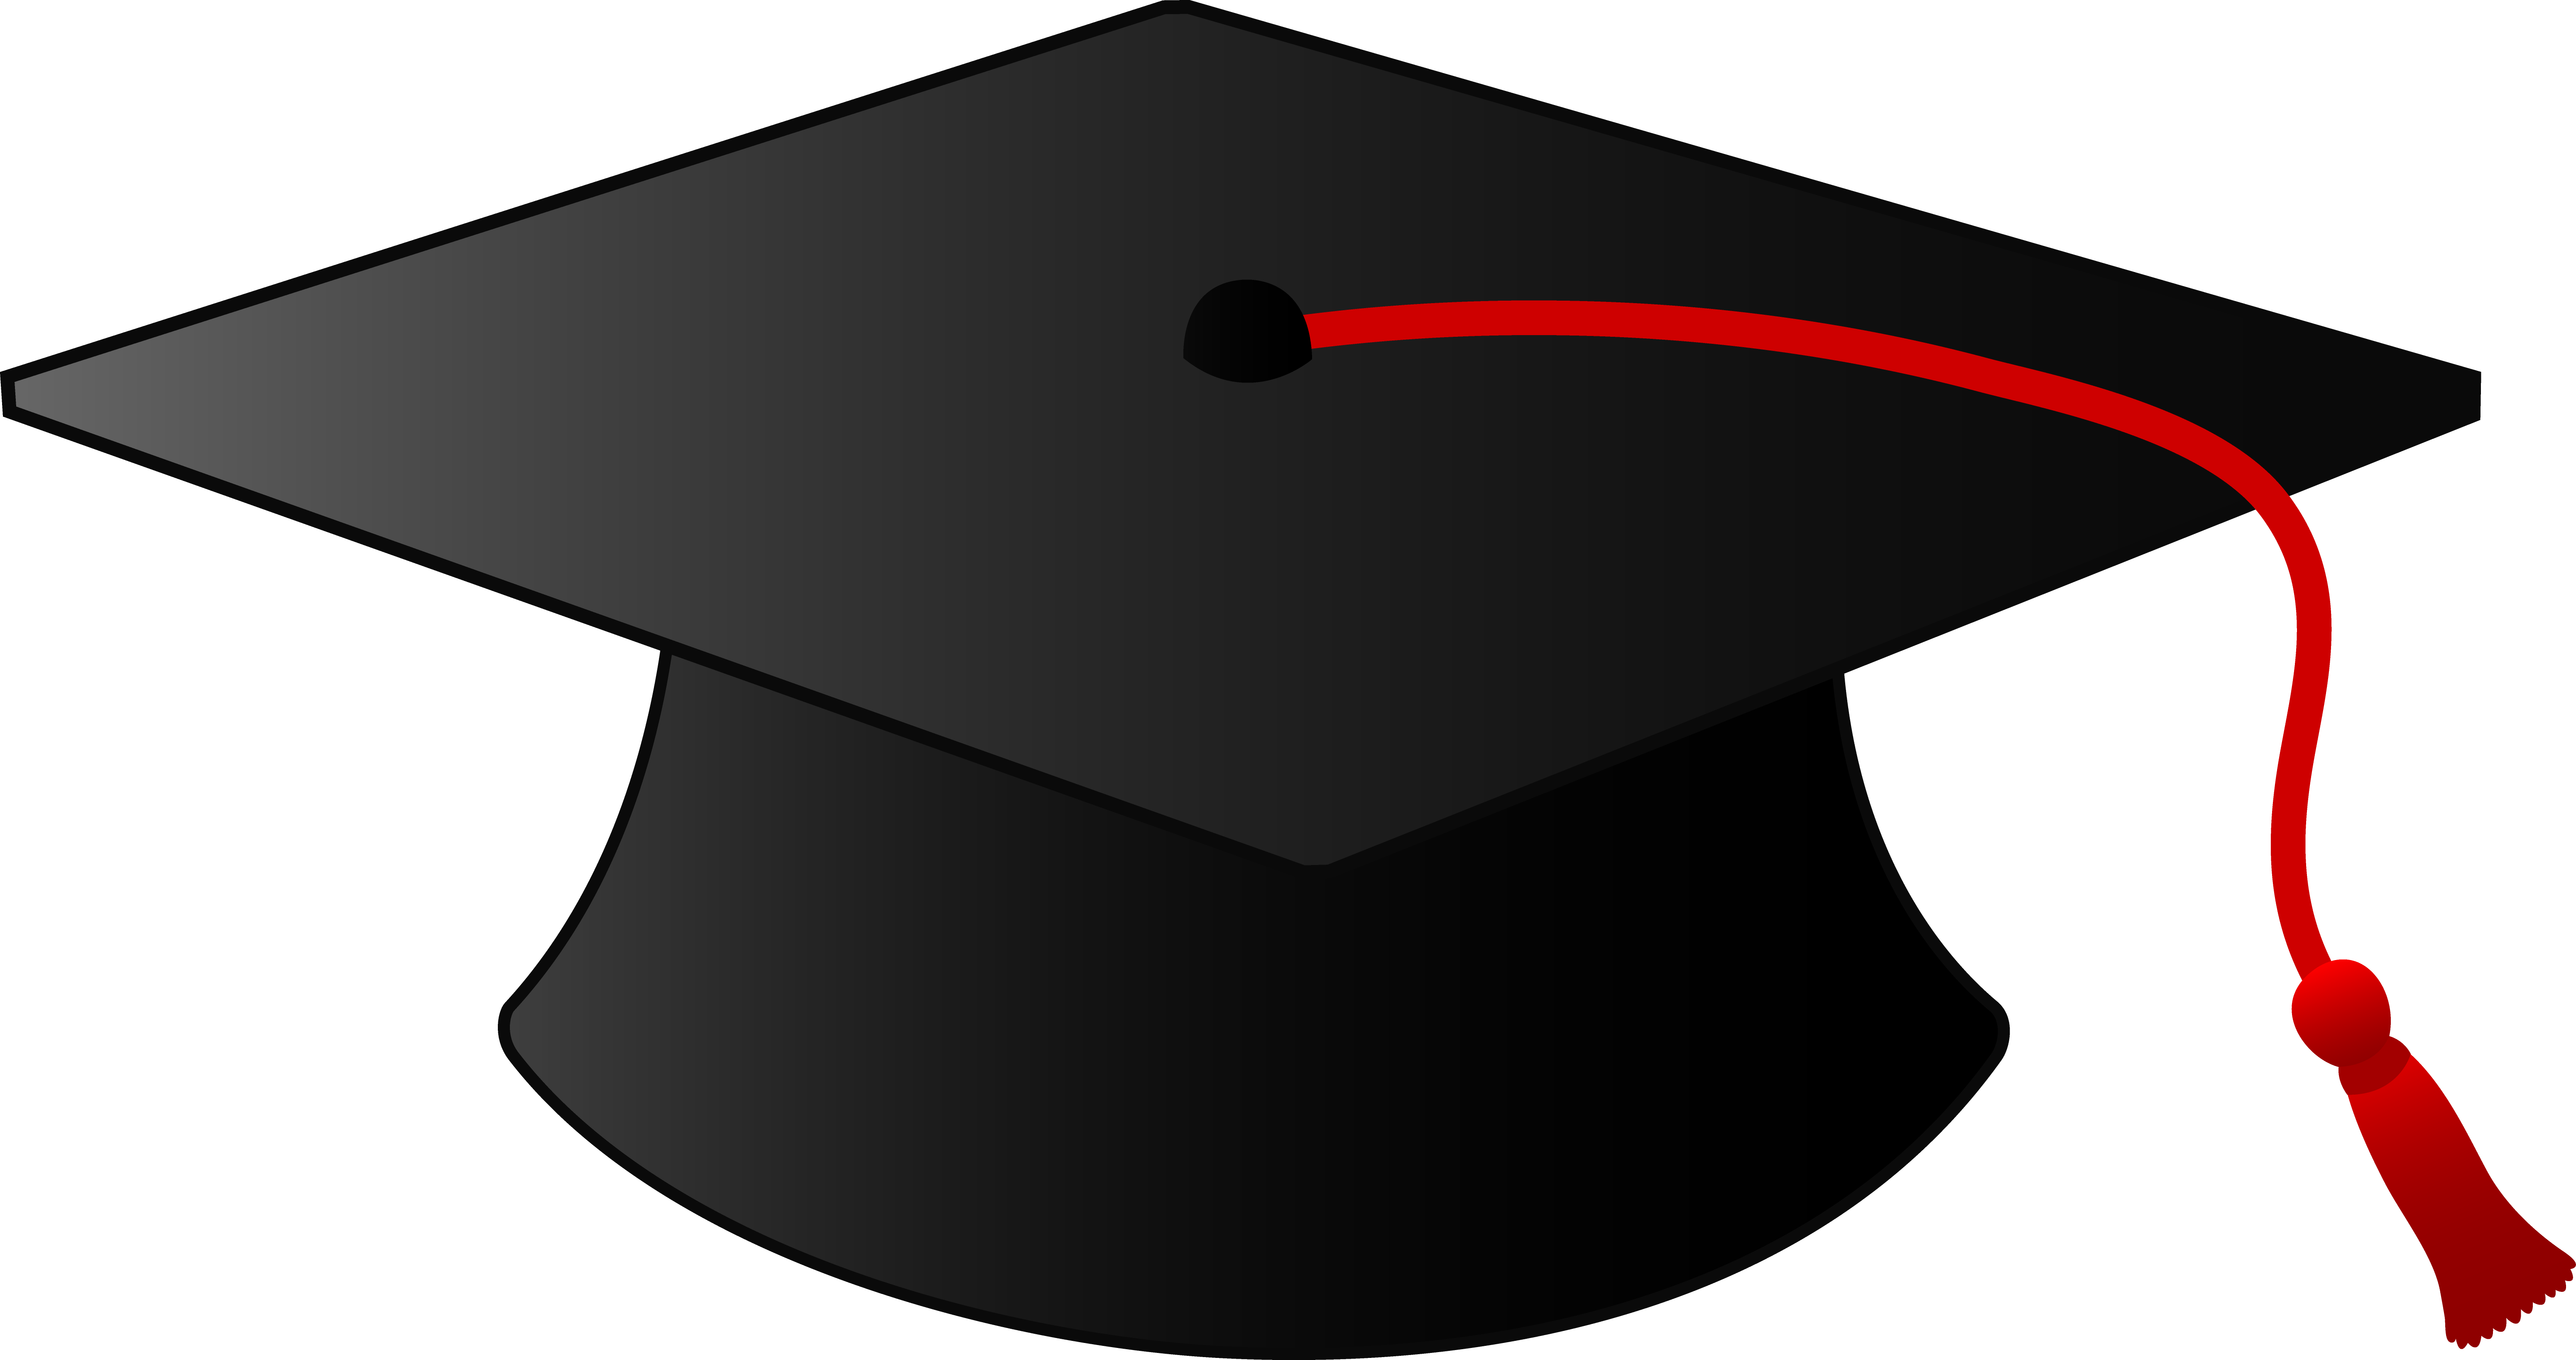 Graduation cap png transparent. Degree hat images all